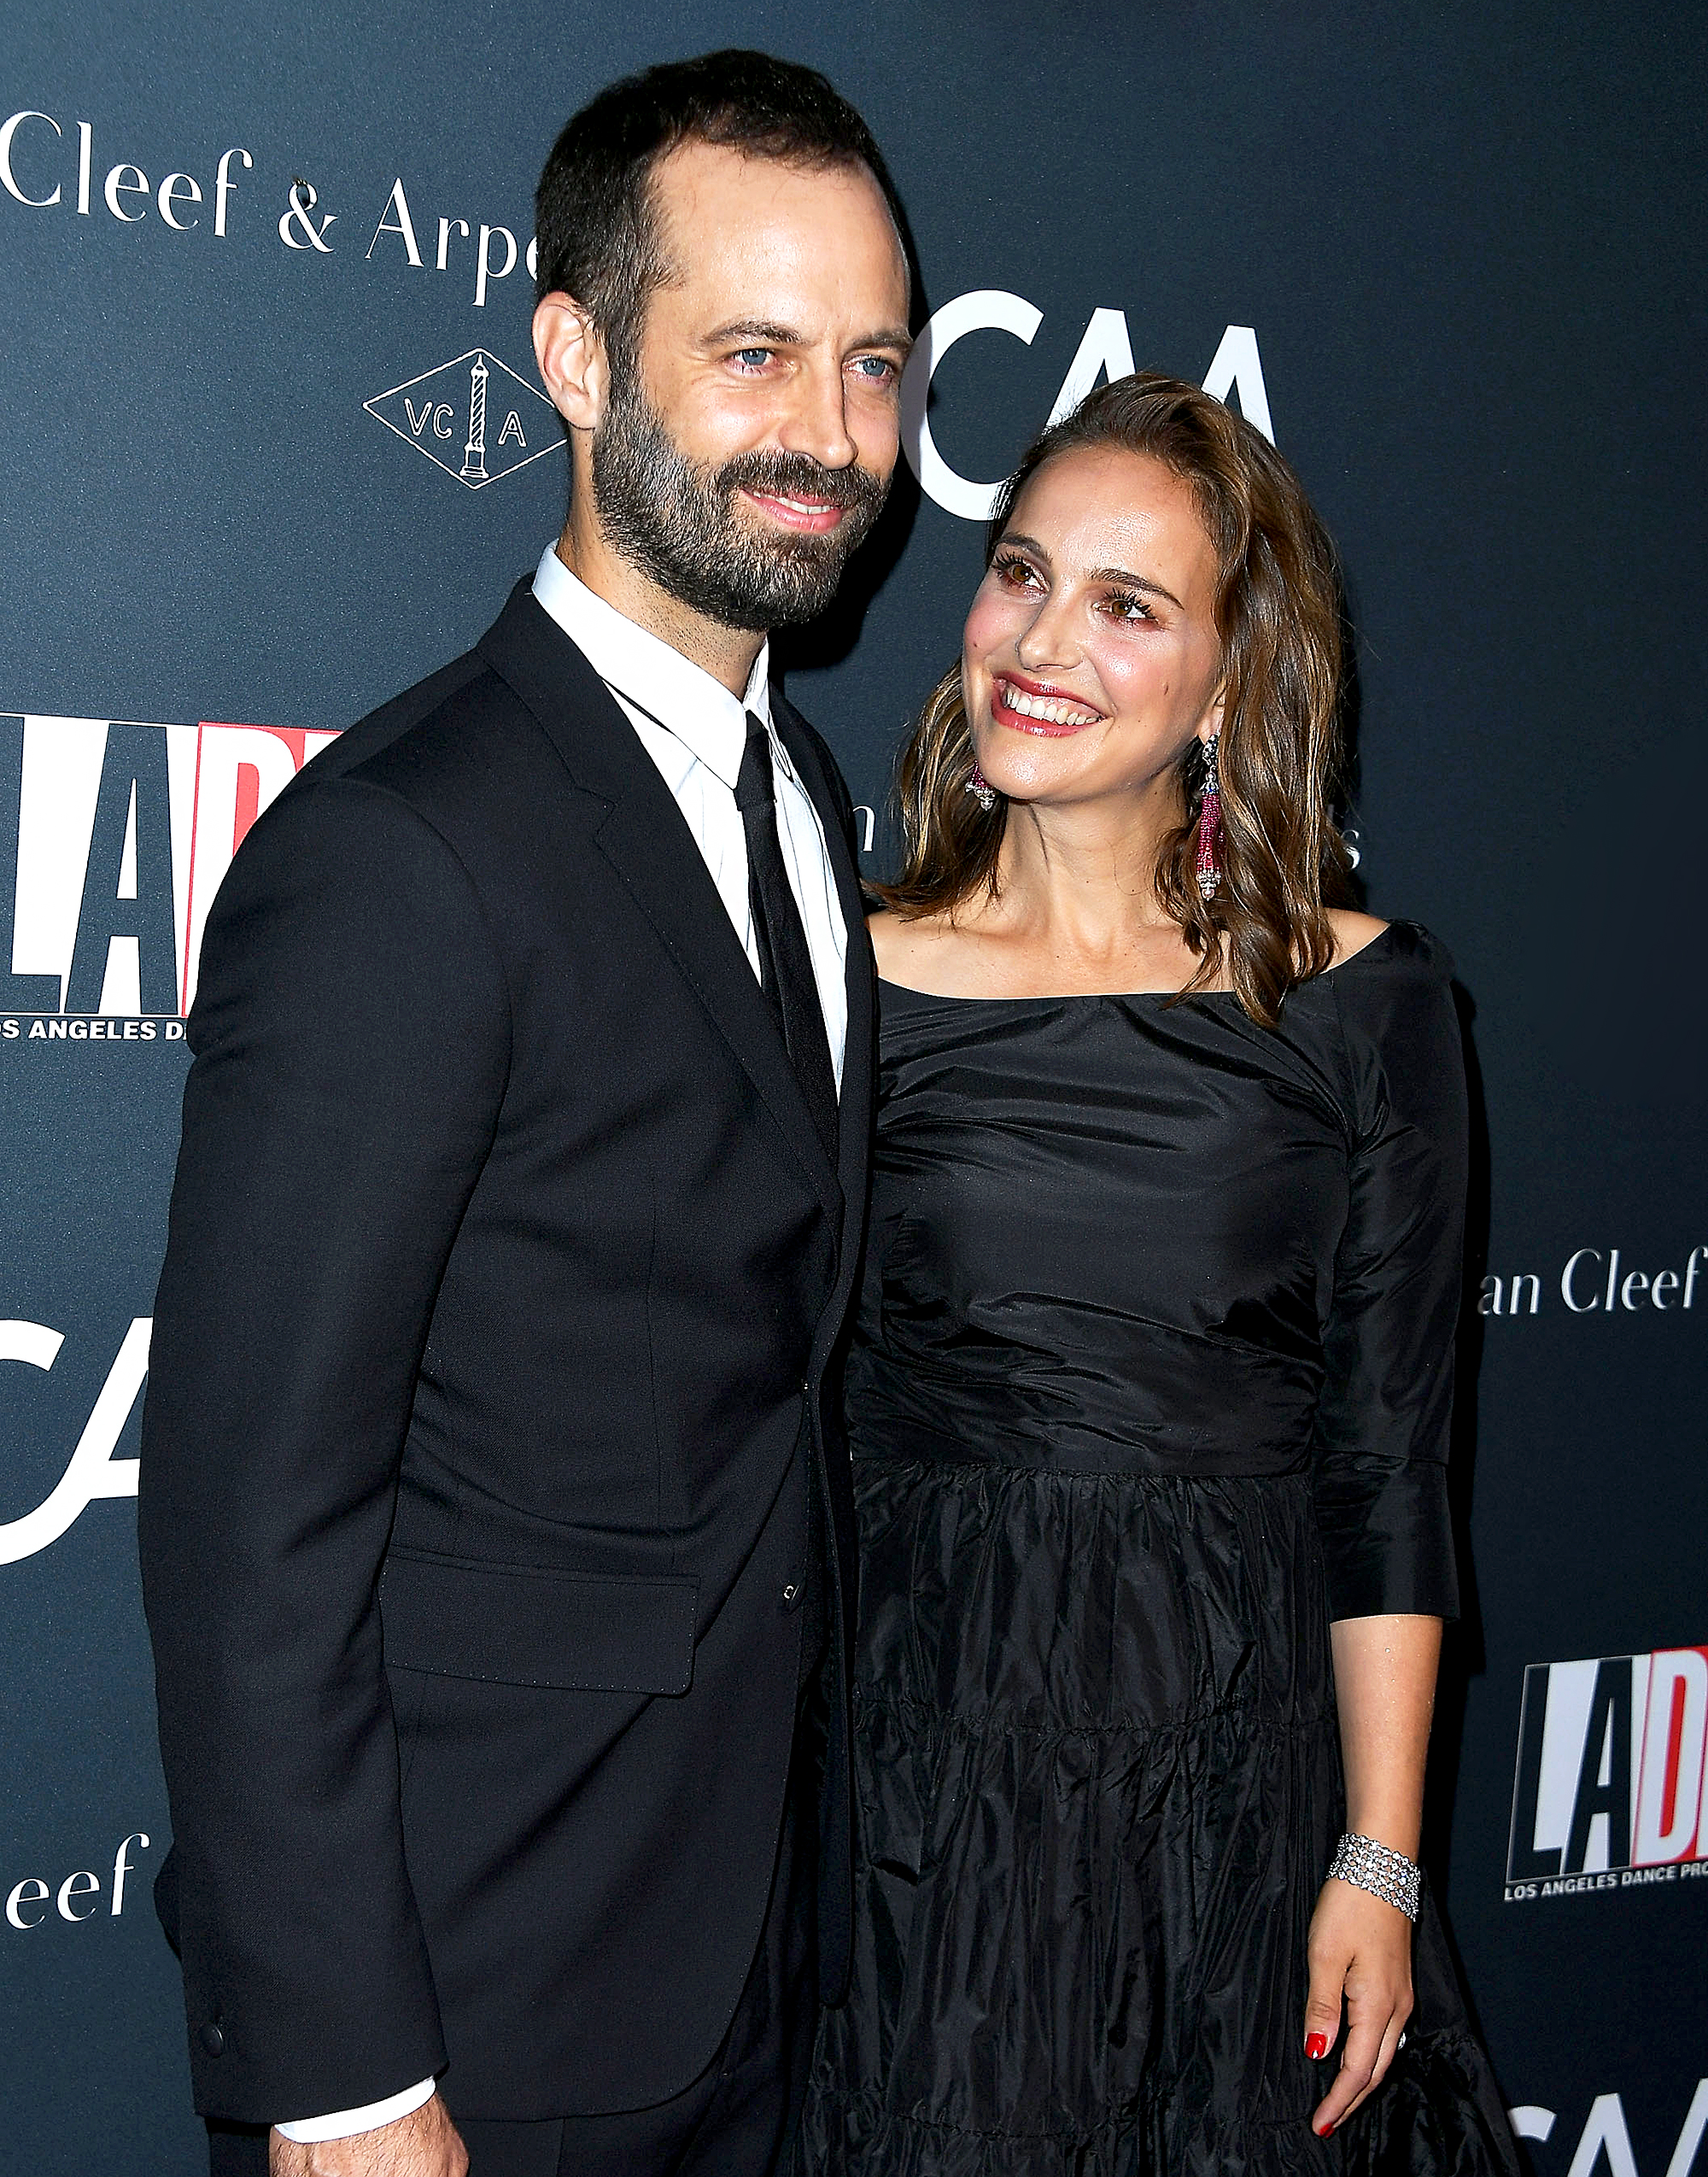 Discussion on this topic: Natalie Portman married Benjamin Millepied wearing a , natalie-portman-married-benjamin-millepied-wearing-a/